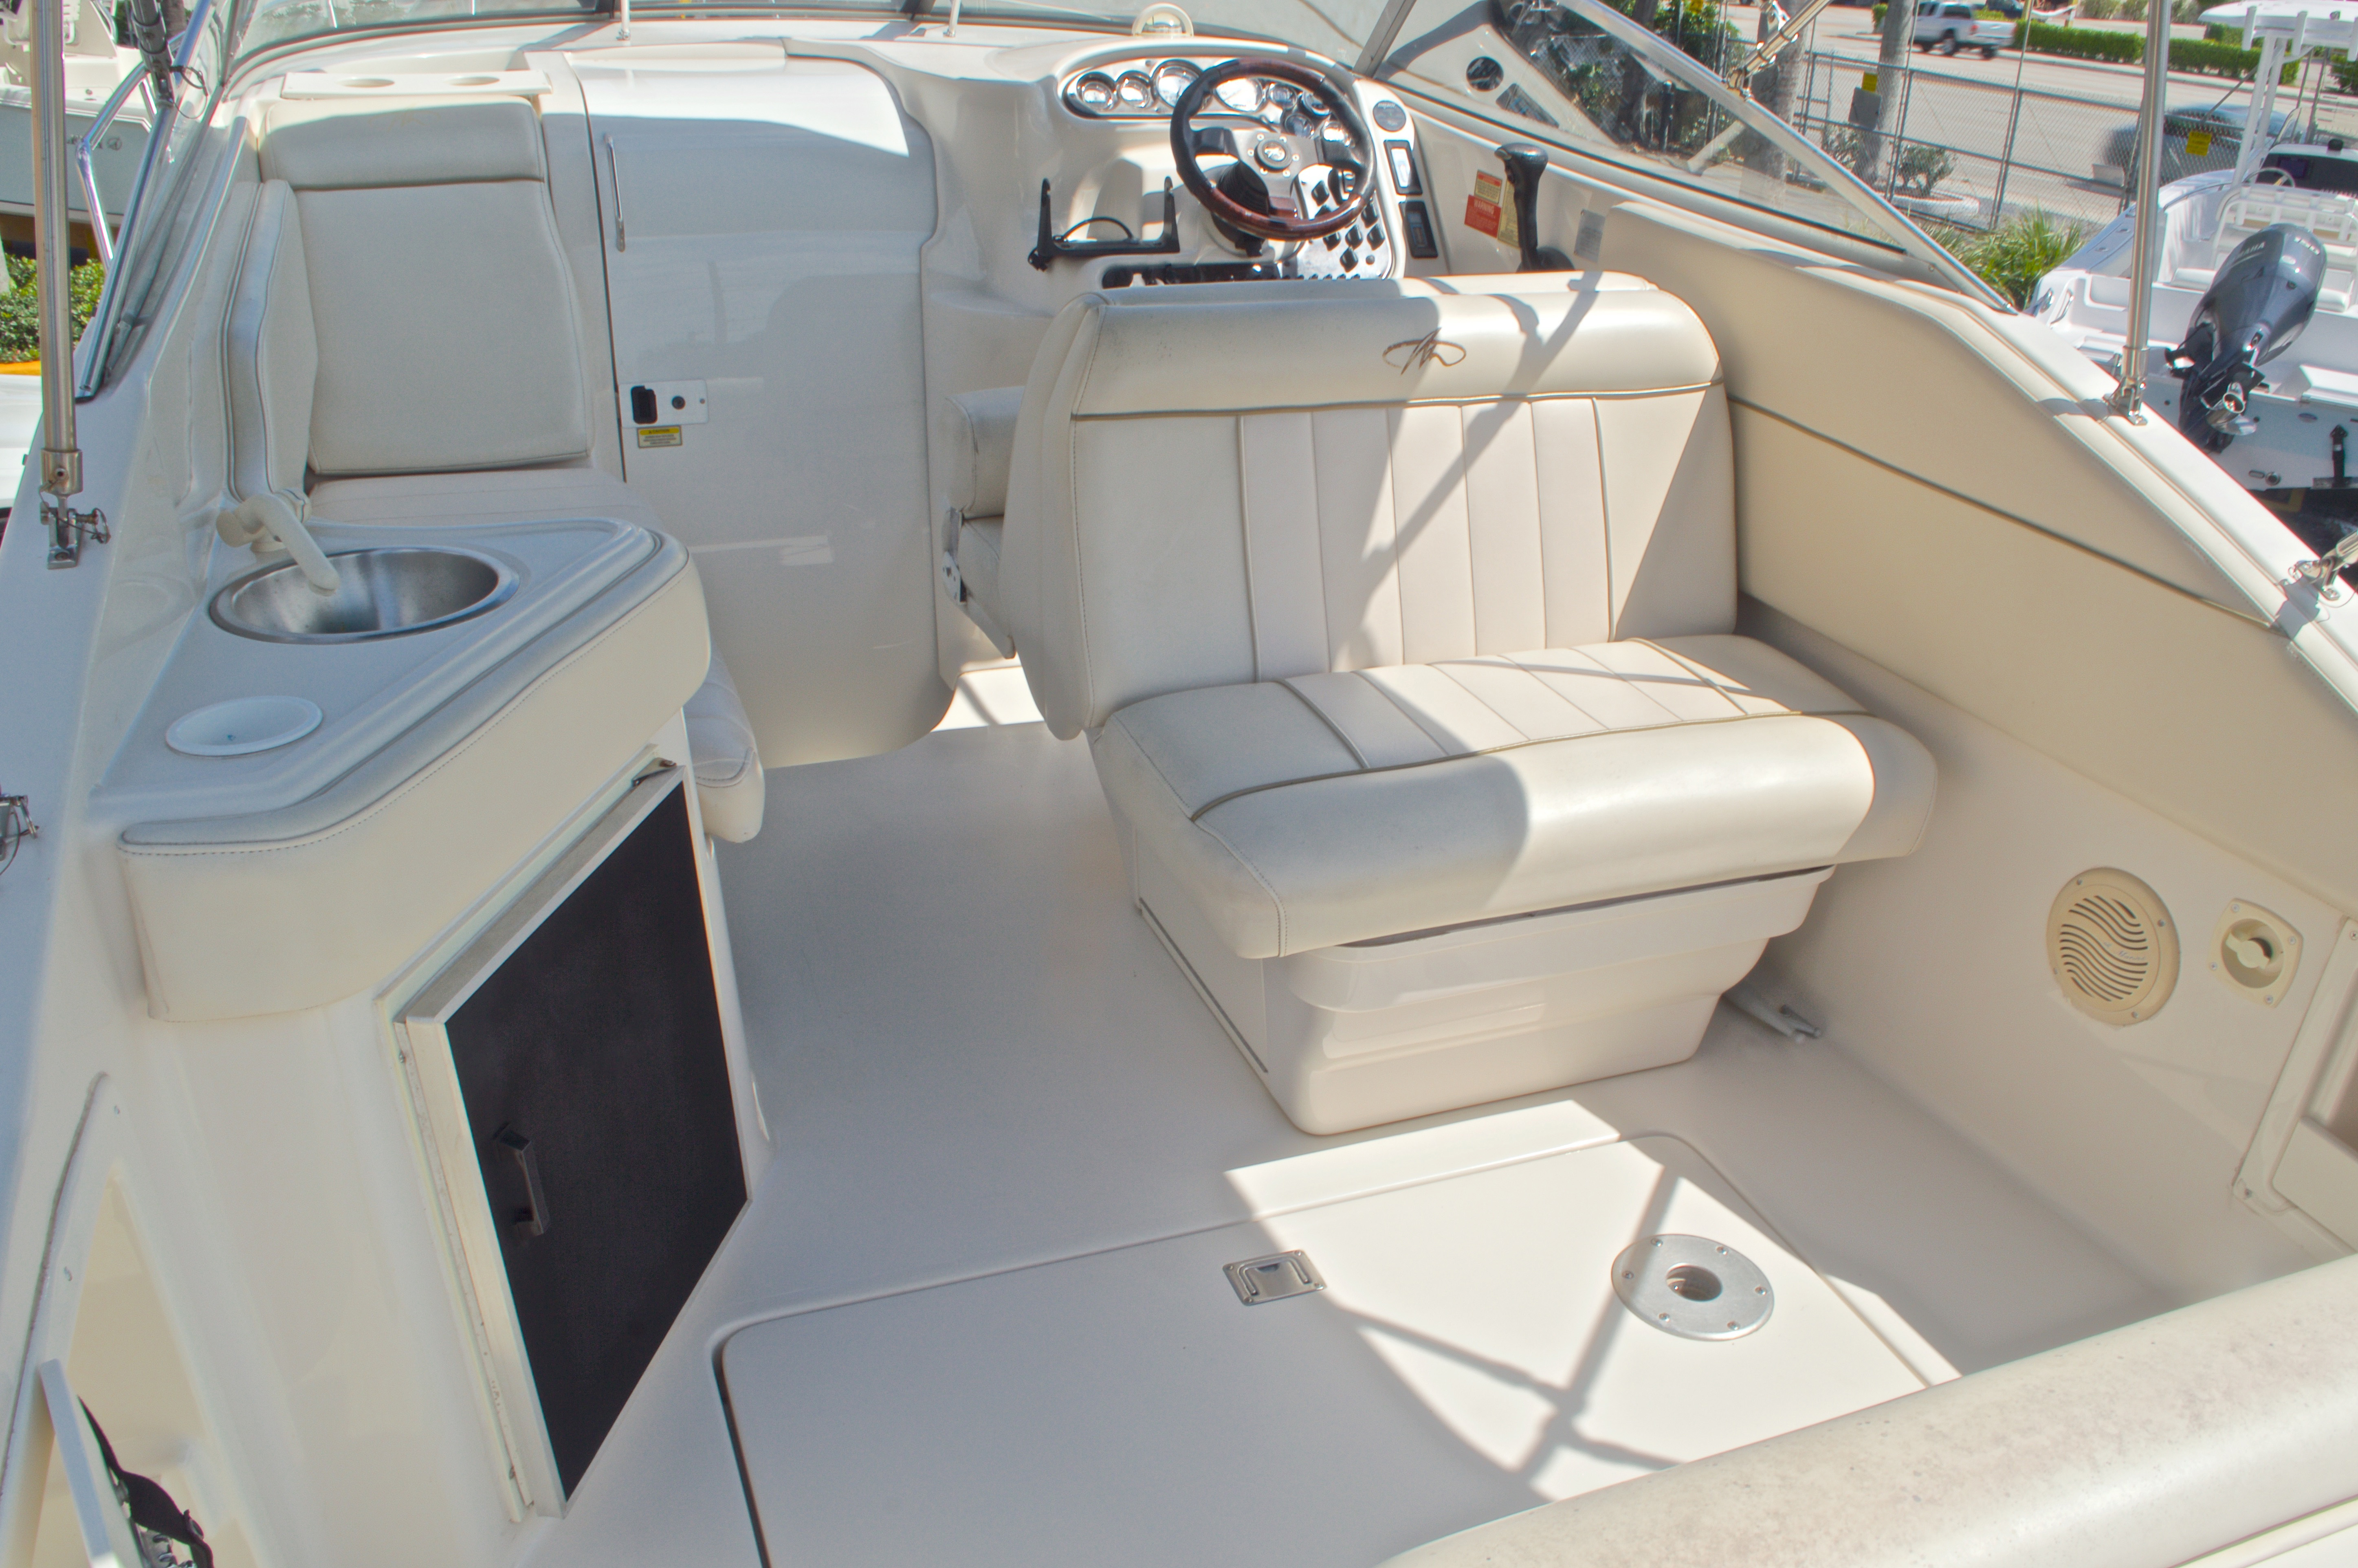 Thumbnail 12 for Used 2002 Monterey 262 Cruiser boat for sale in West Palm Beach, FL